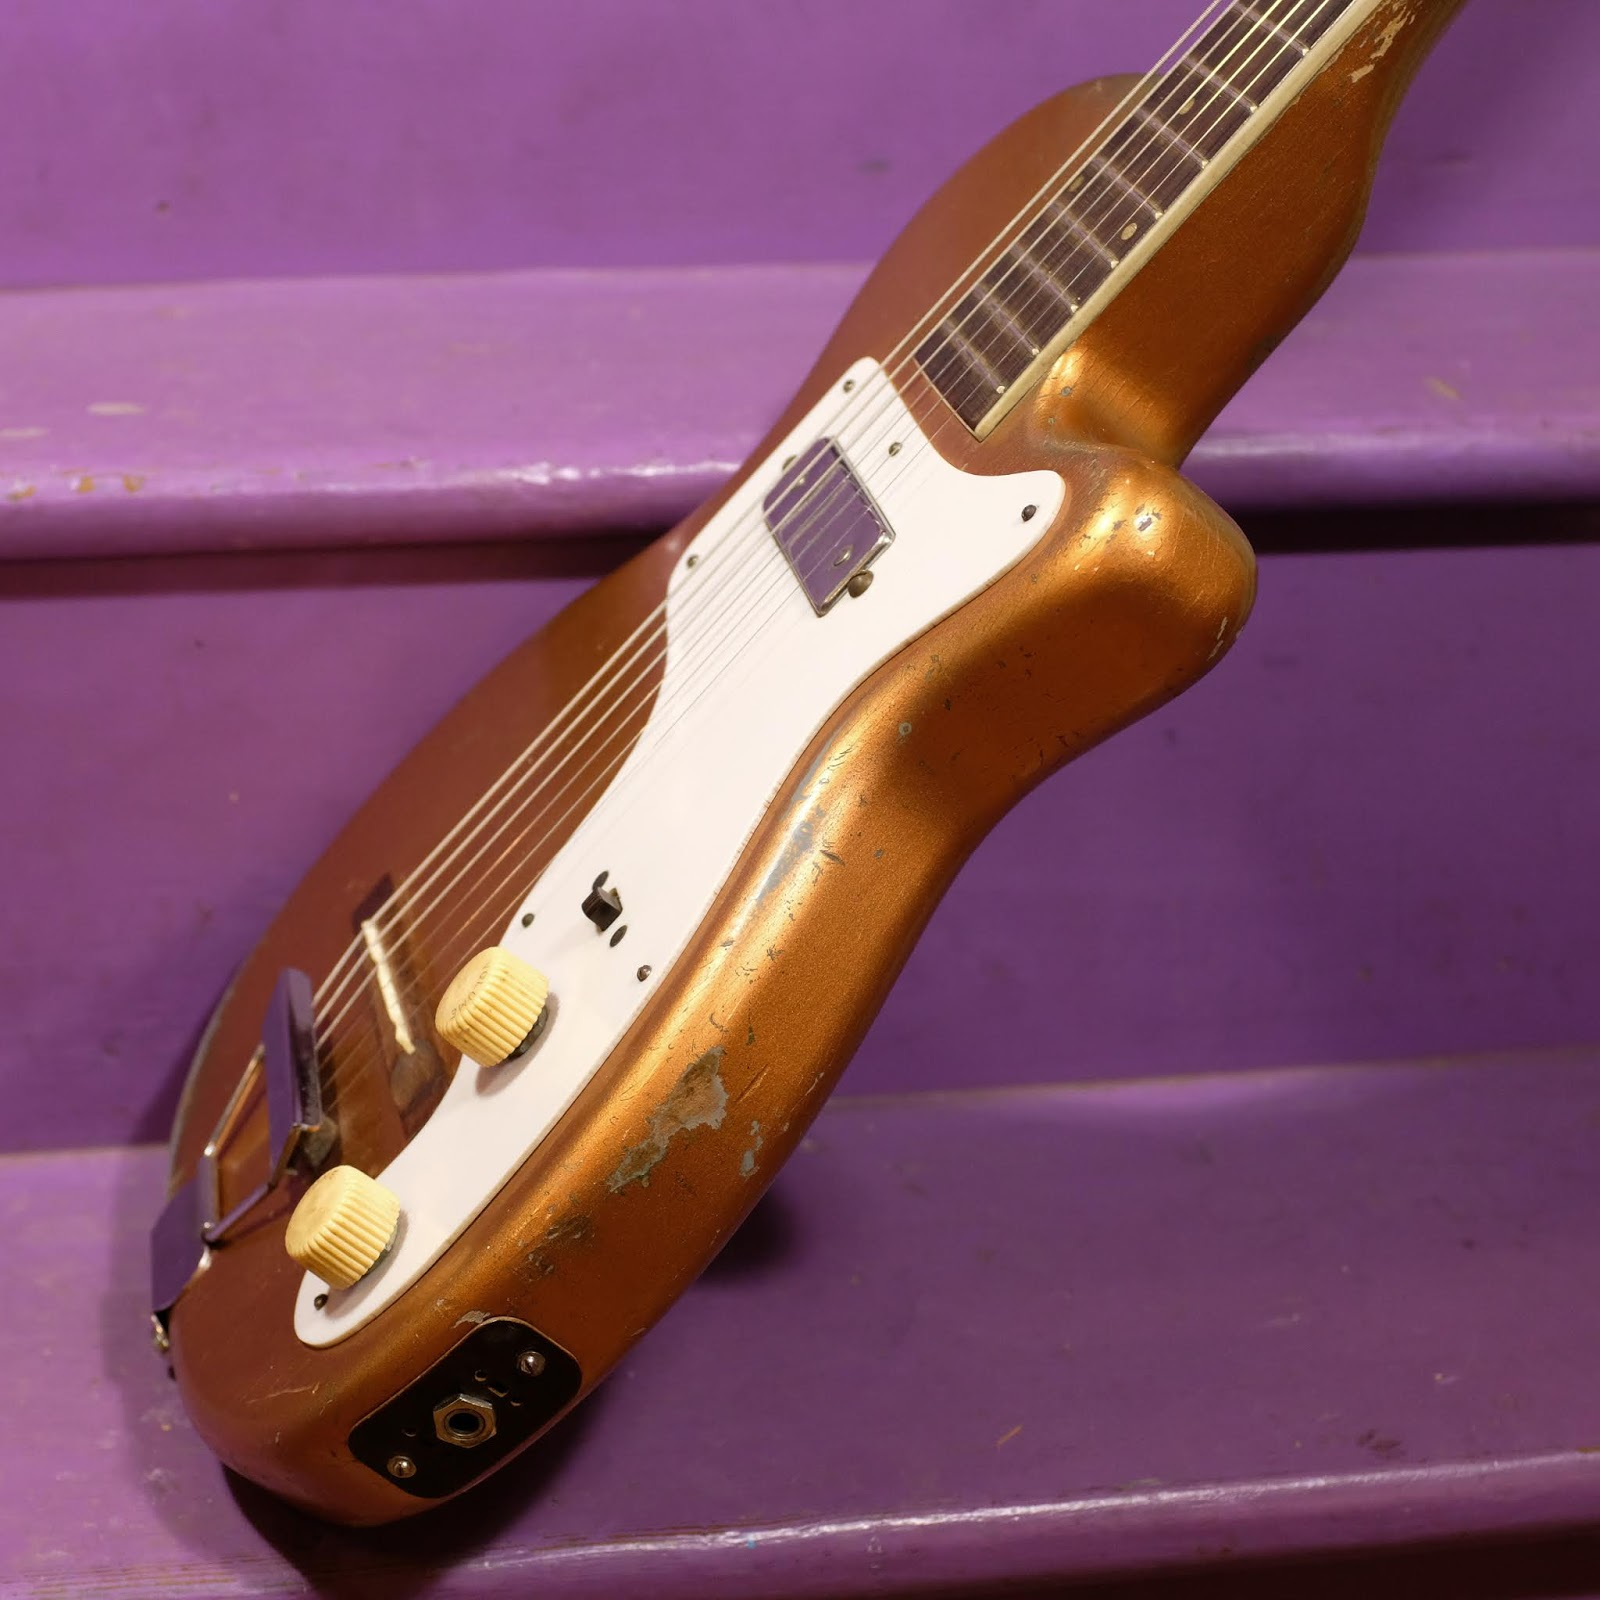 1950s Harmony H44 Stratotone Electric Guitar on